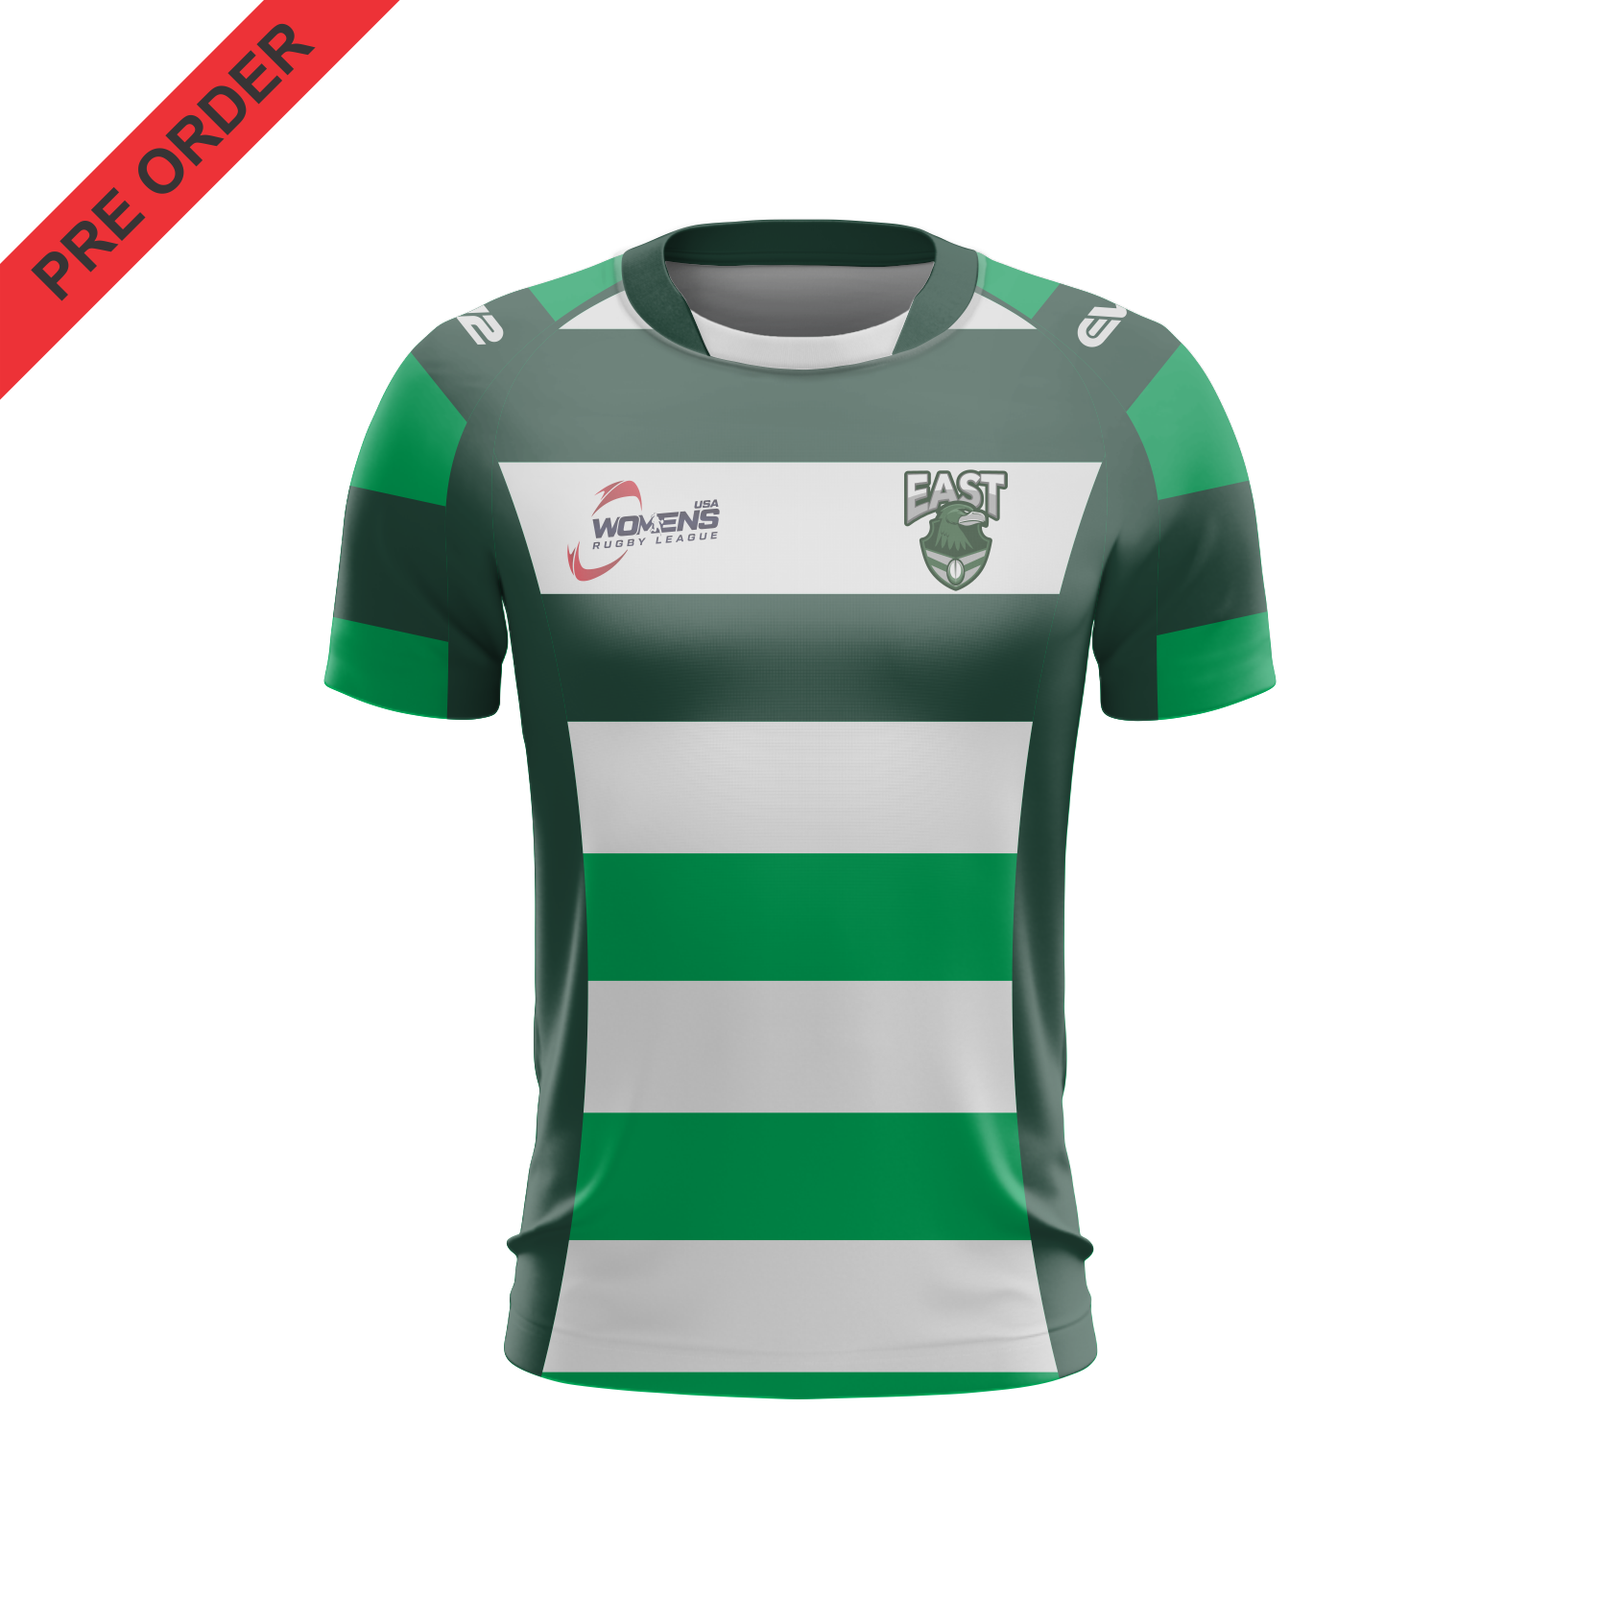 Easts Rugby League - Nines Jersey